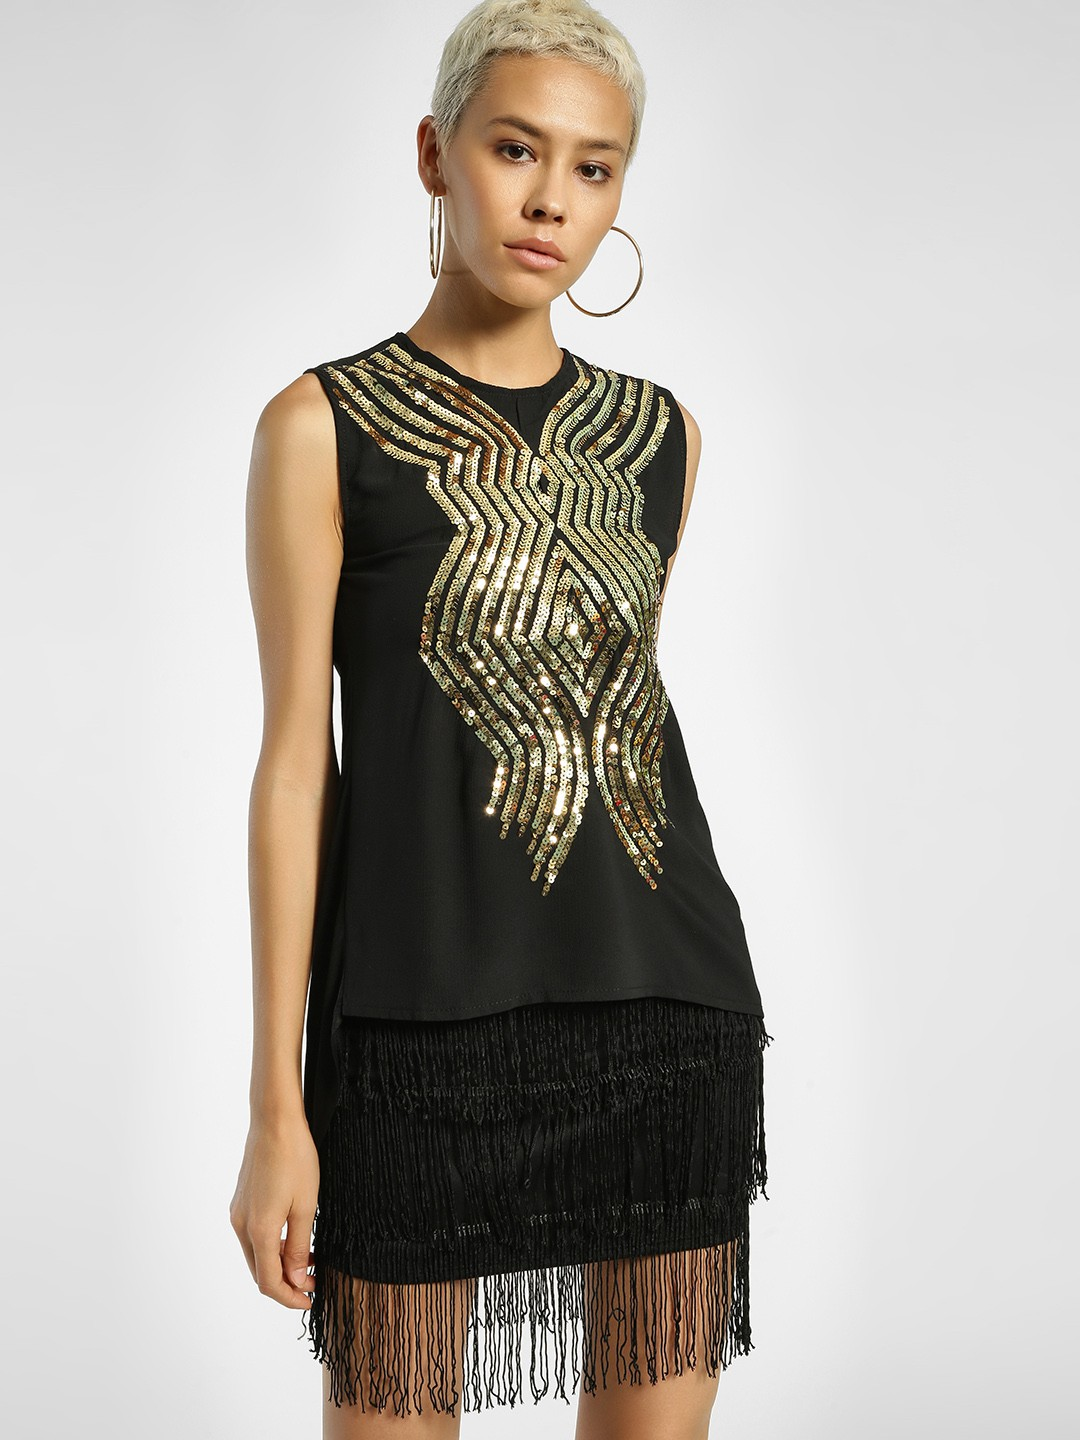 Privy League Black Sequined Sleeveless Blouse 1